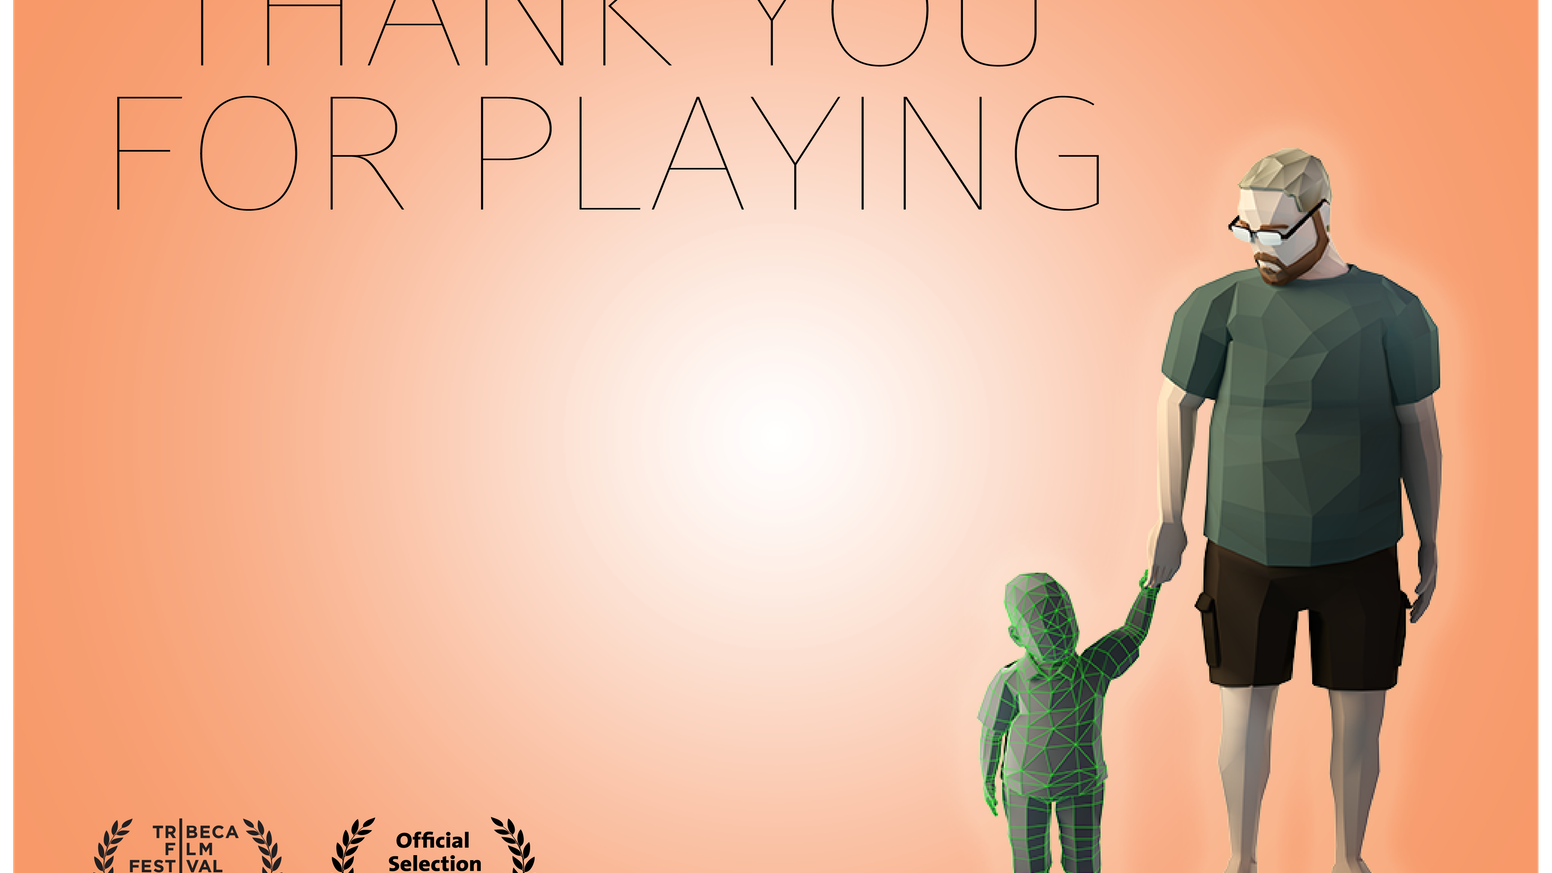 Award-winning film about Ryan & Amy Green, who created an unusual and poetic video game about their son with cancer.